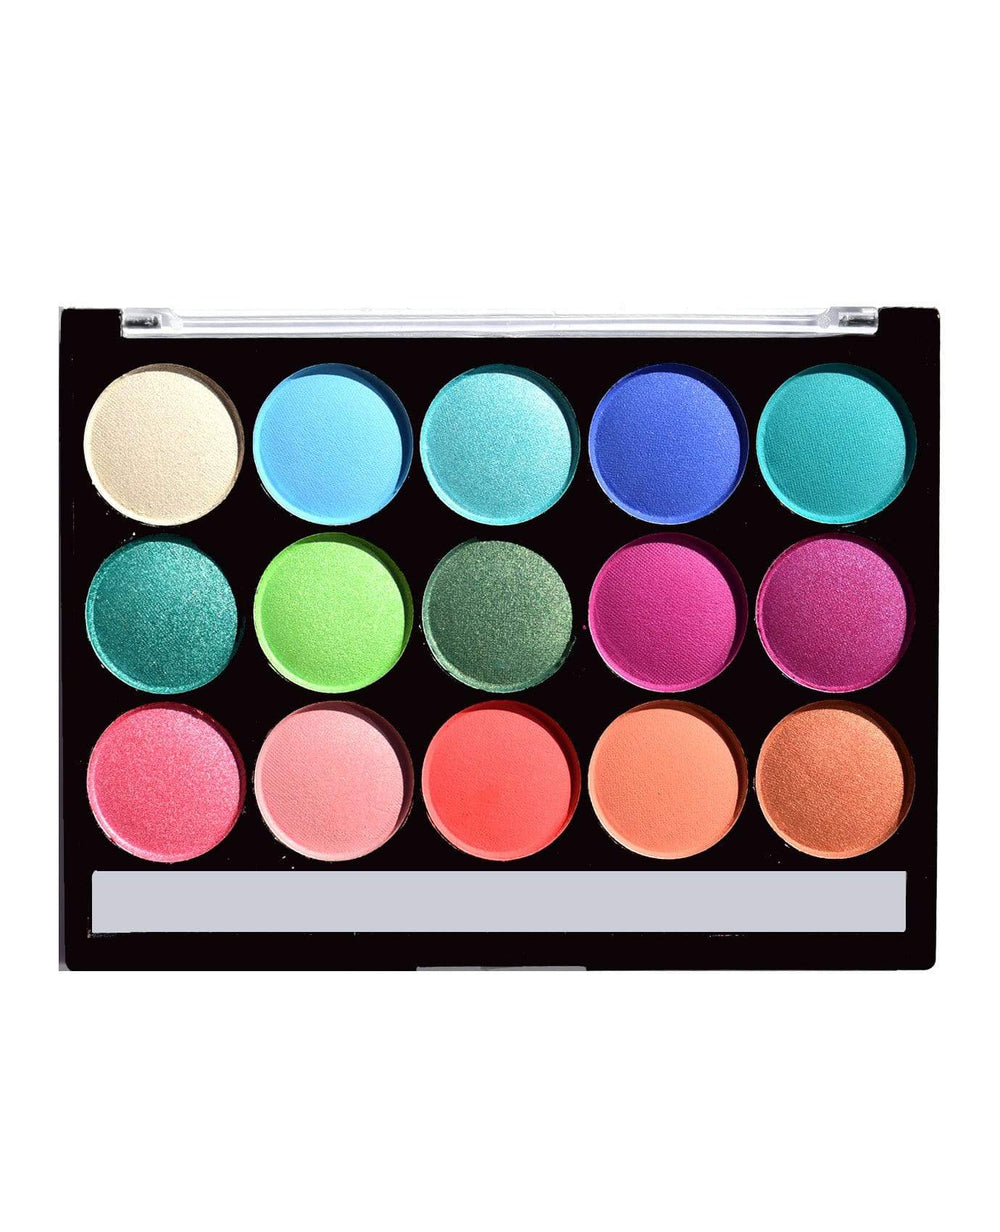 Amuse Mermaid Eyeshadow Palette